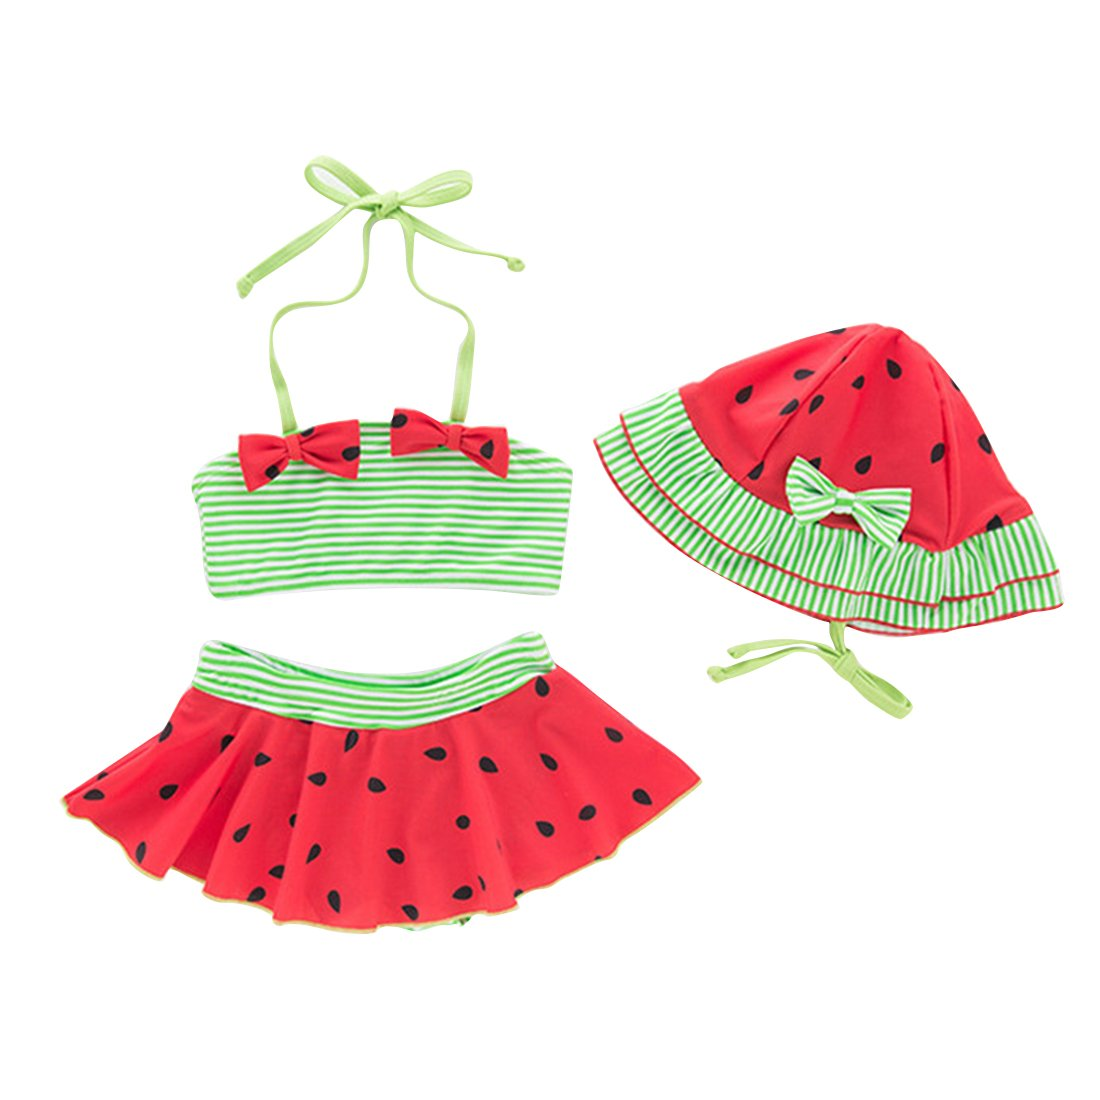 Amberetech 3pcs Toddler Baby Girls Swimwear Cute Watermelon Bikini Set Swimsuit Beachwear Outfits